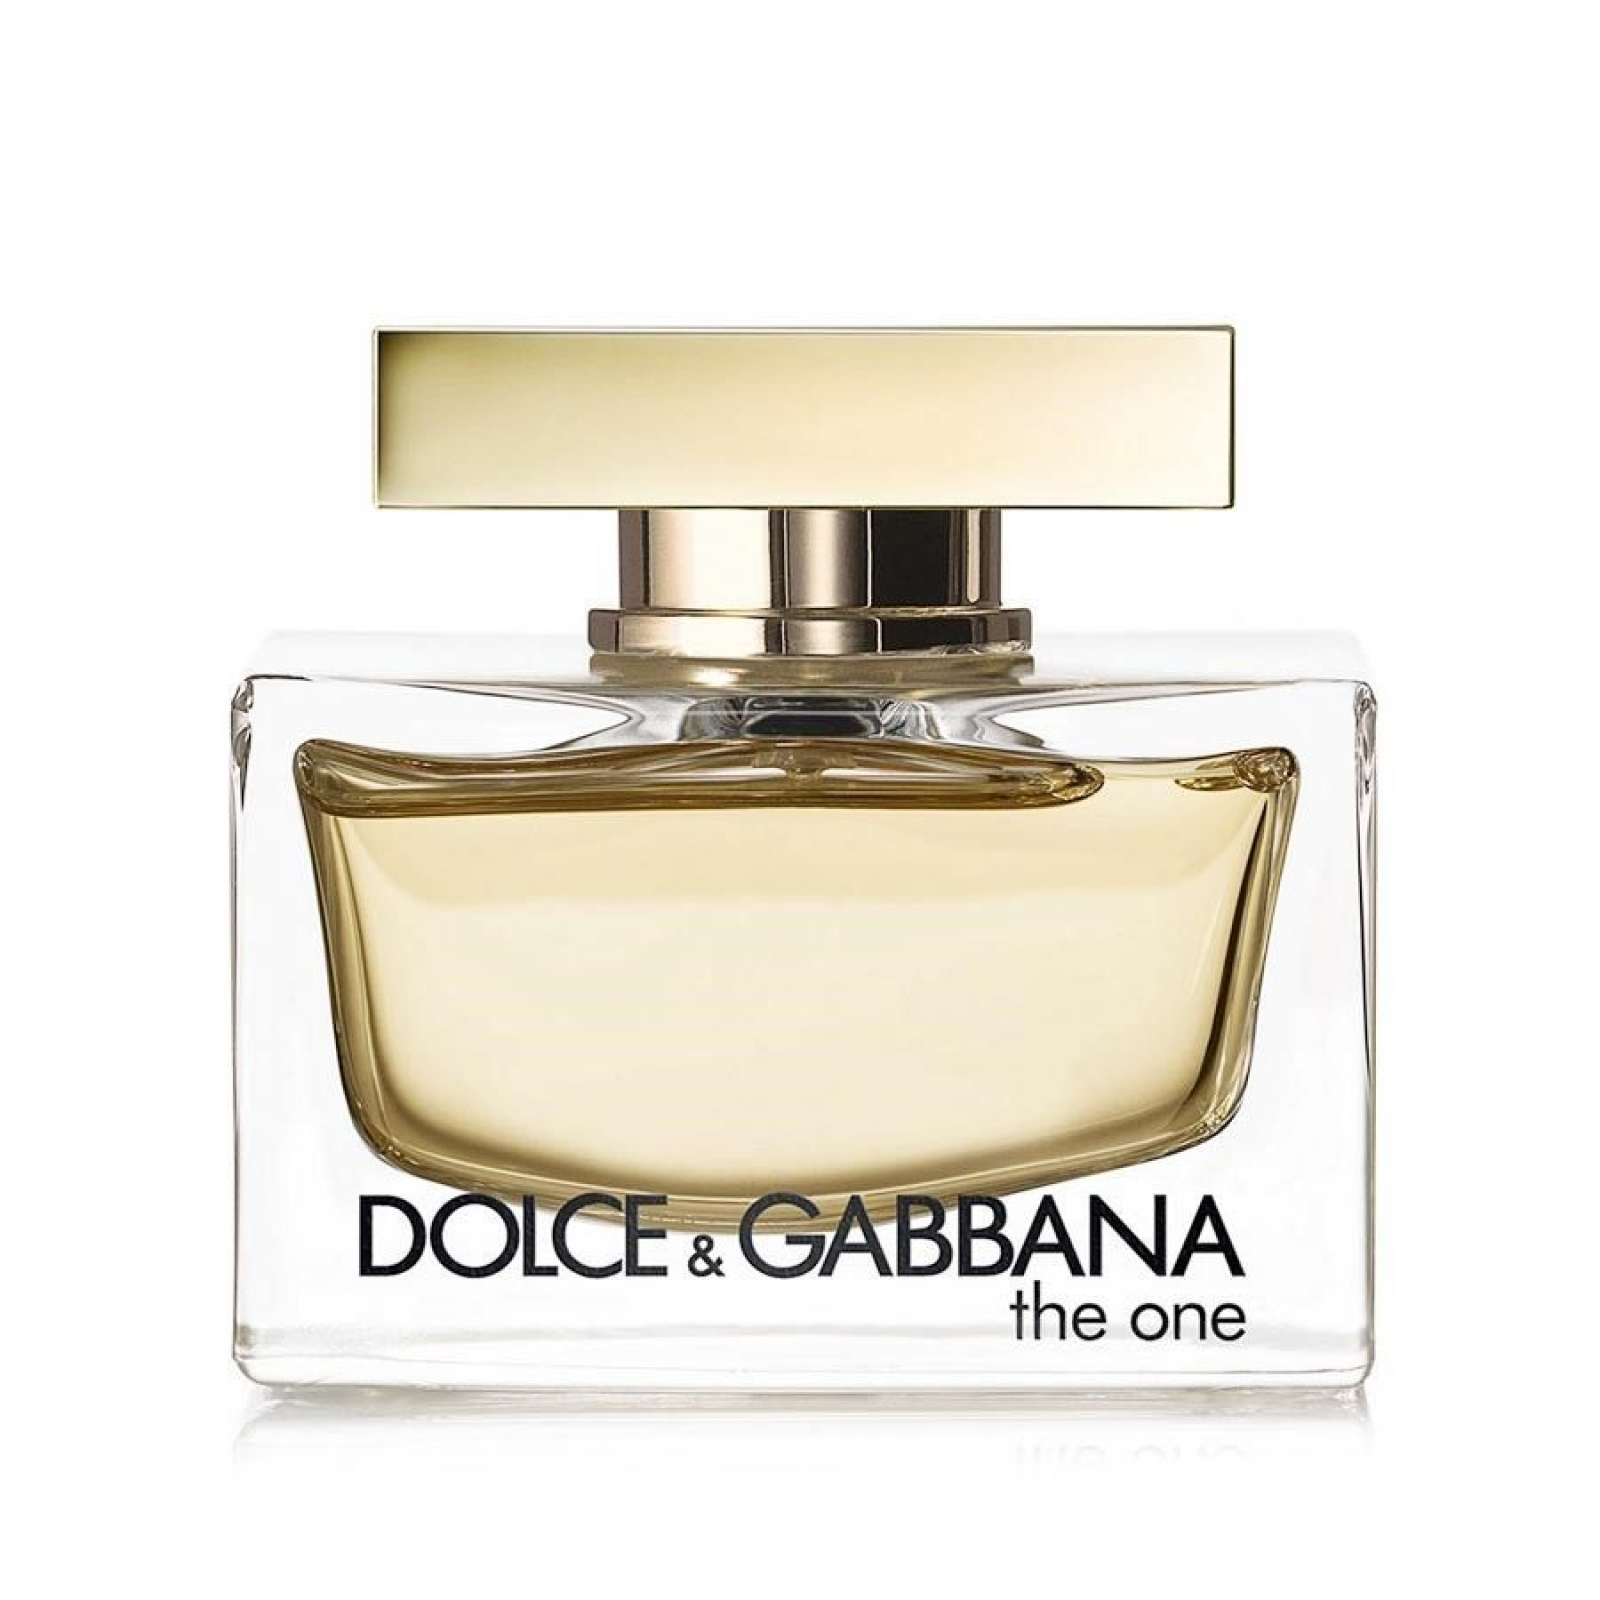 Dolce & Gabbana The One Eau de Parfum for Woman